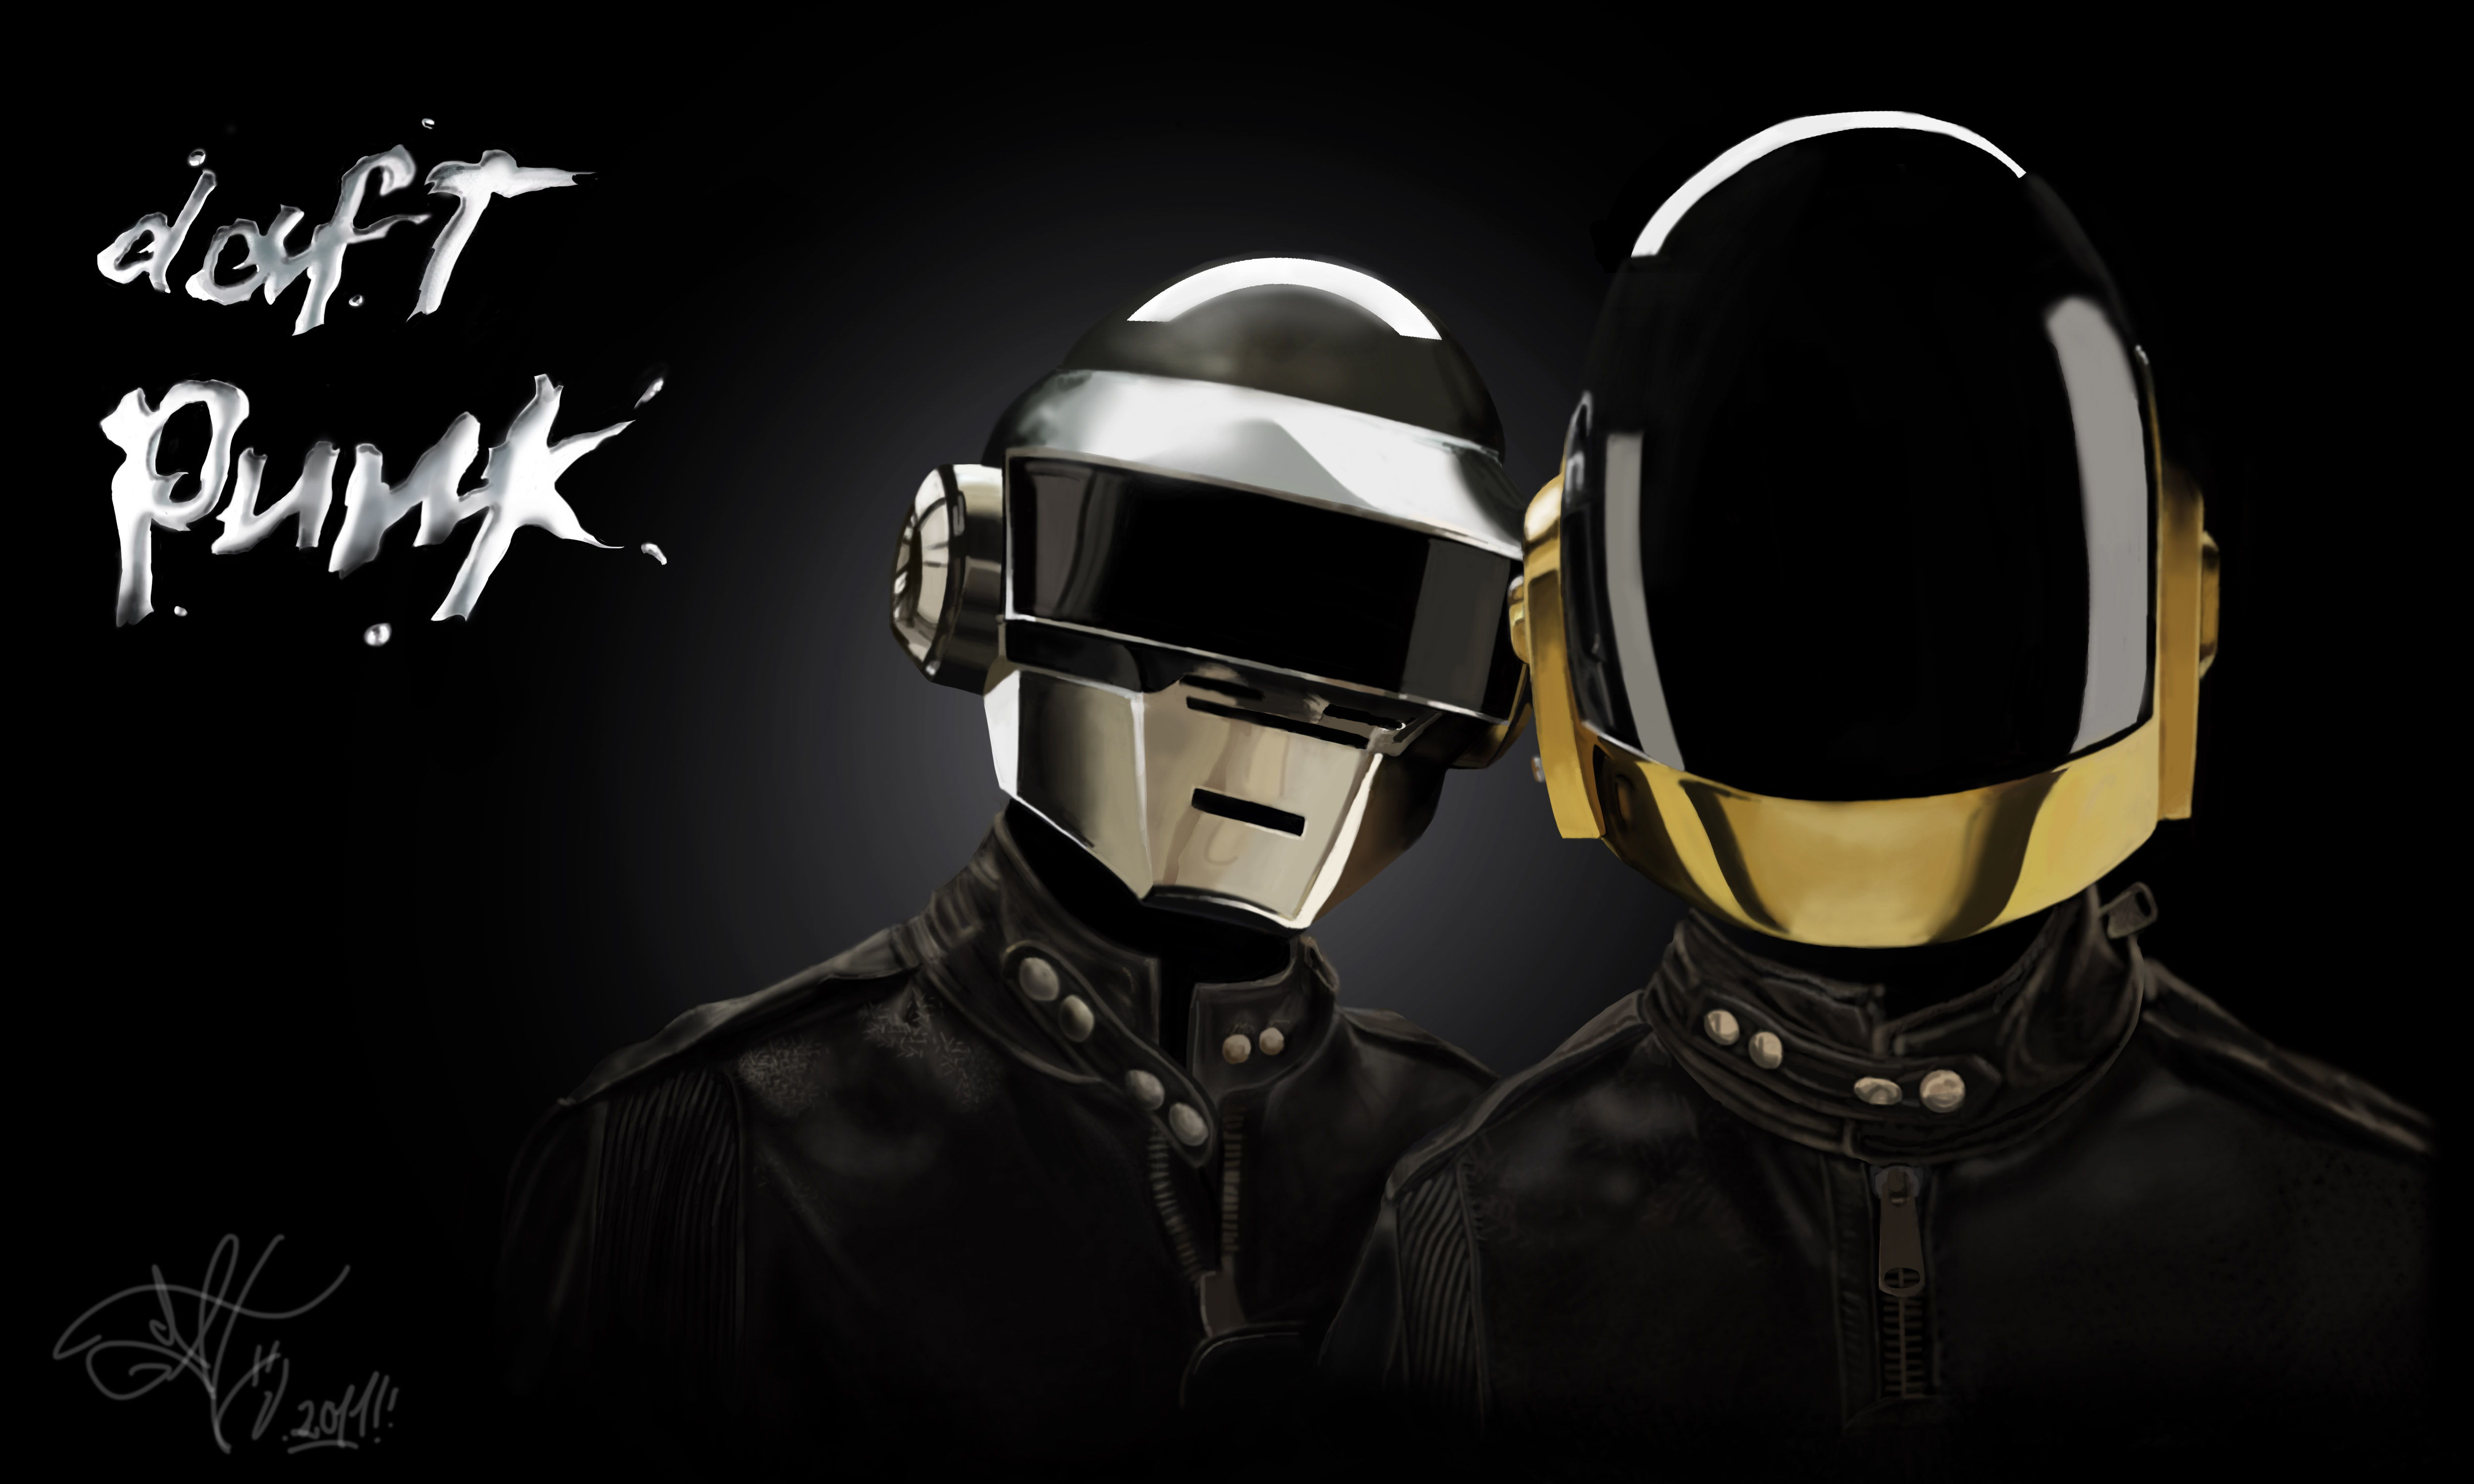 daft punk strongerdaft punk starboy, daft punk лица, daft punk - get lucky, daft punk get lucky скачать, daft punk скачать, daft punk around the world, daft punk technologic, daft punk 2017, daft punk слушать, daft punk random access memories, daft punk stronger, daft punk discovery, daft punk robot rock, daft punk one more time, daft punk tron, daft punk & the weeknd starboy, daft punk within, daft punk wiki, daft punk перевод, daft punk derezzed